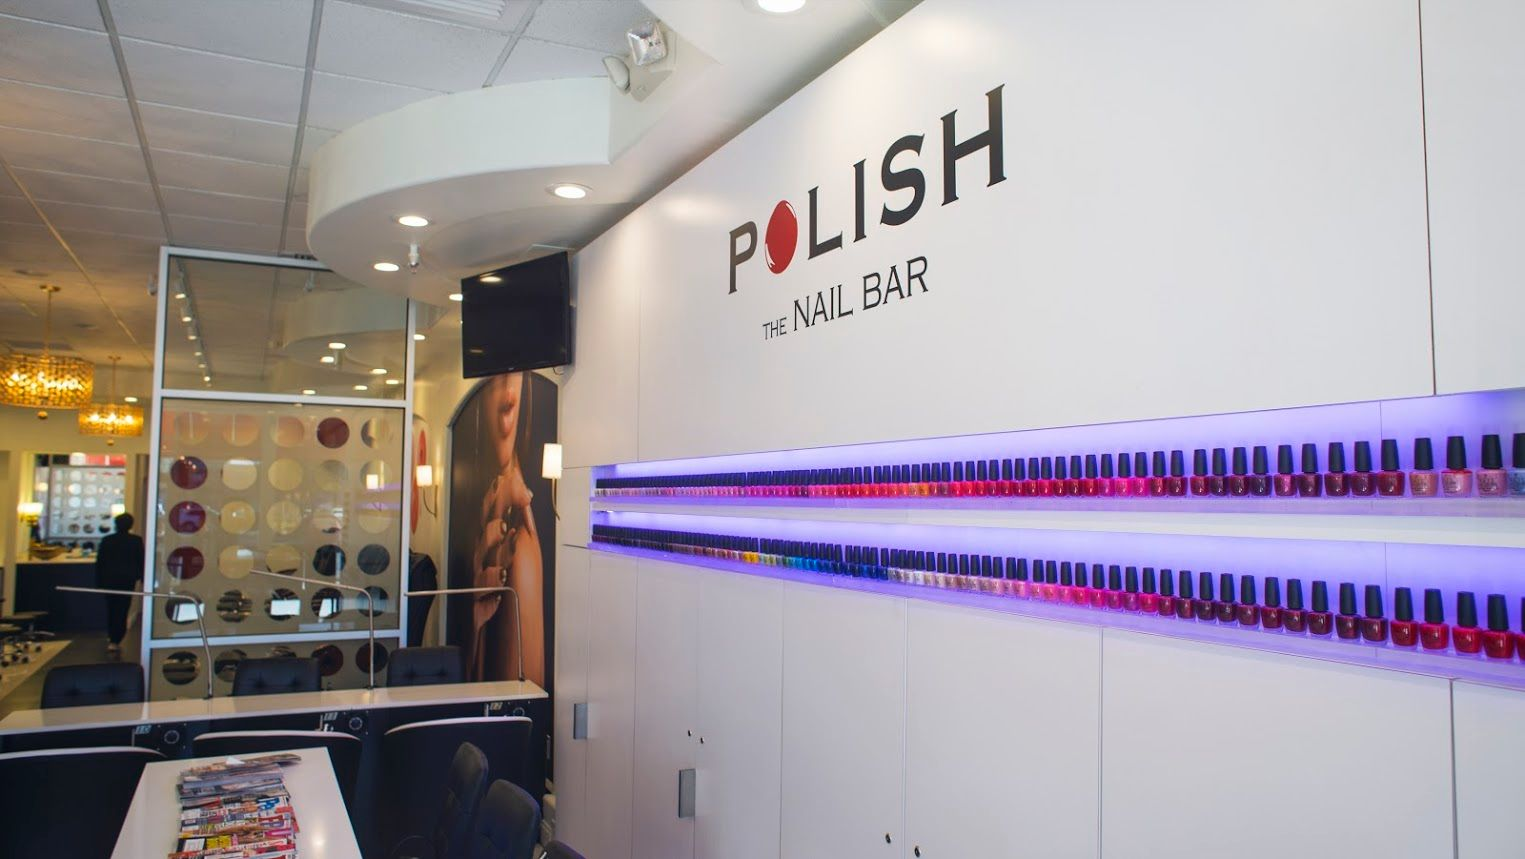 Nail Salon in Jacksonville, FL - POLISH - The Nail Bar